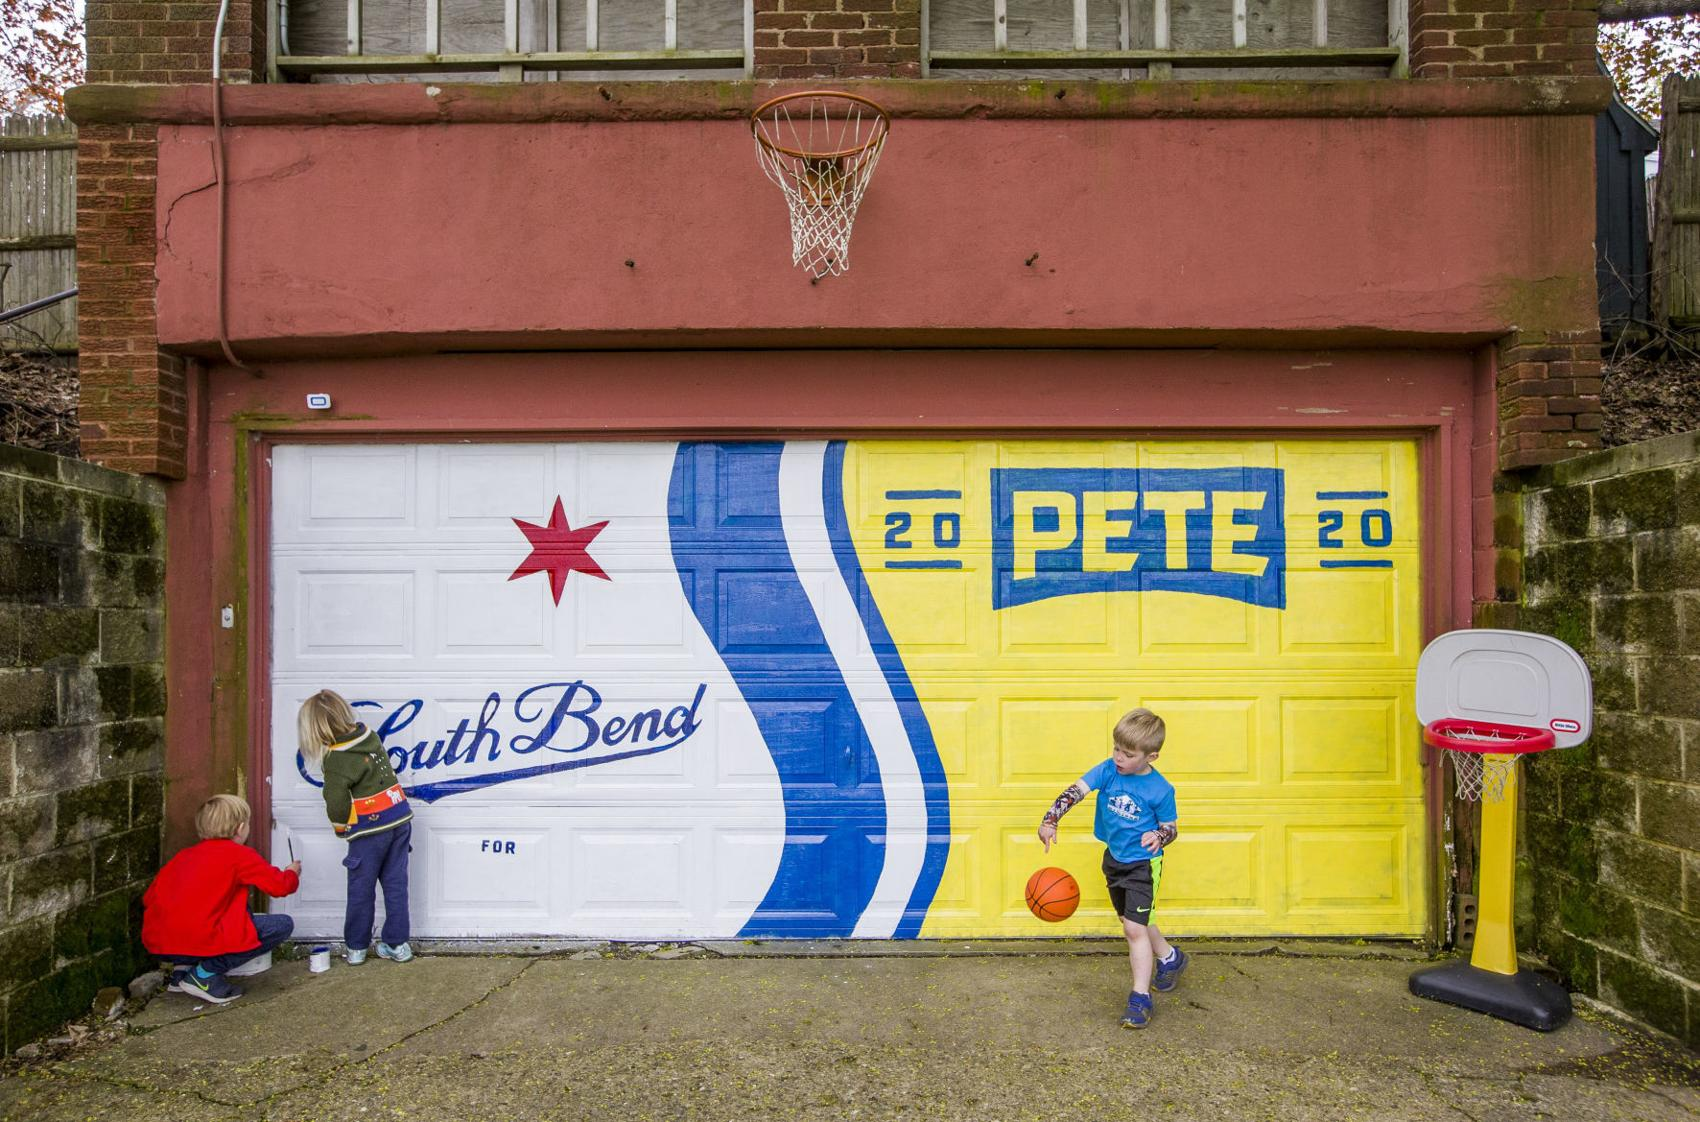 A family in South Bend  decorating their garage with the Pete logo.